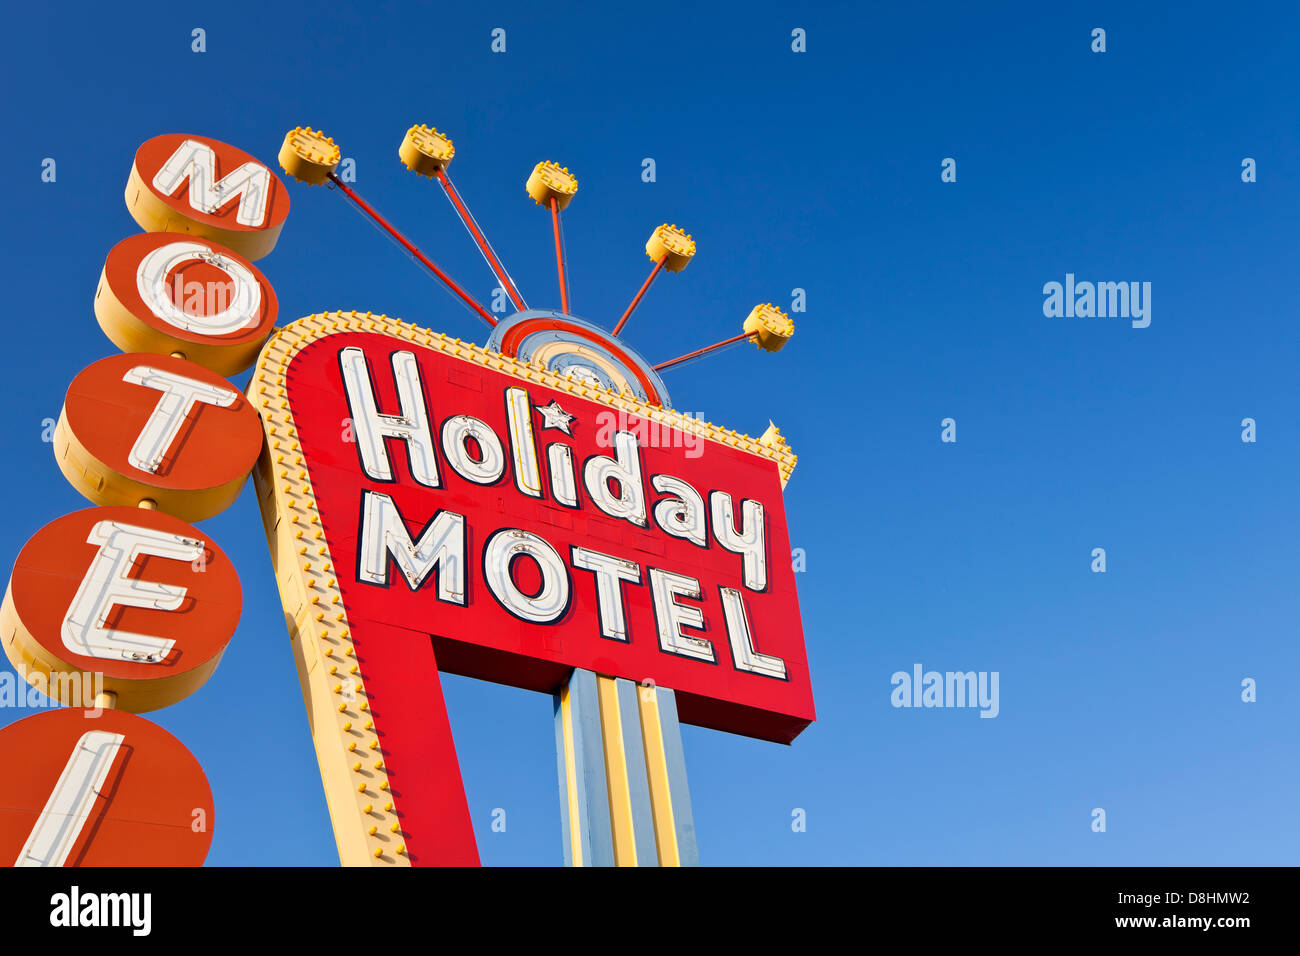 United States of America, Nevada, Las Vegas, The Strip, Motel sign - Stock Image